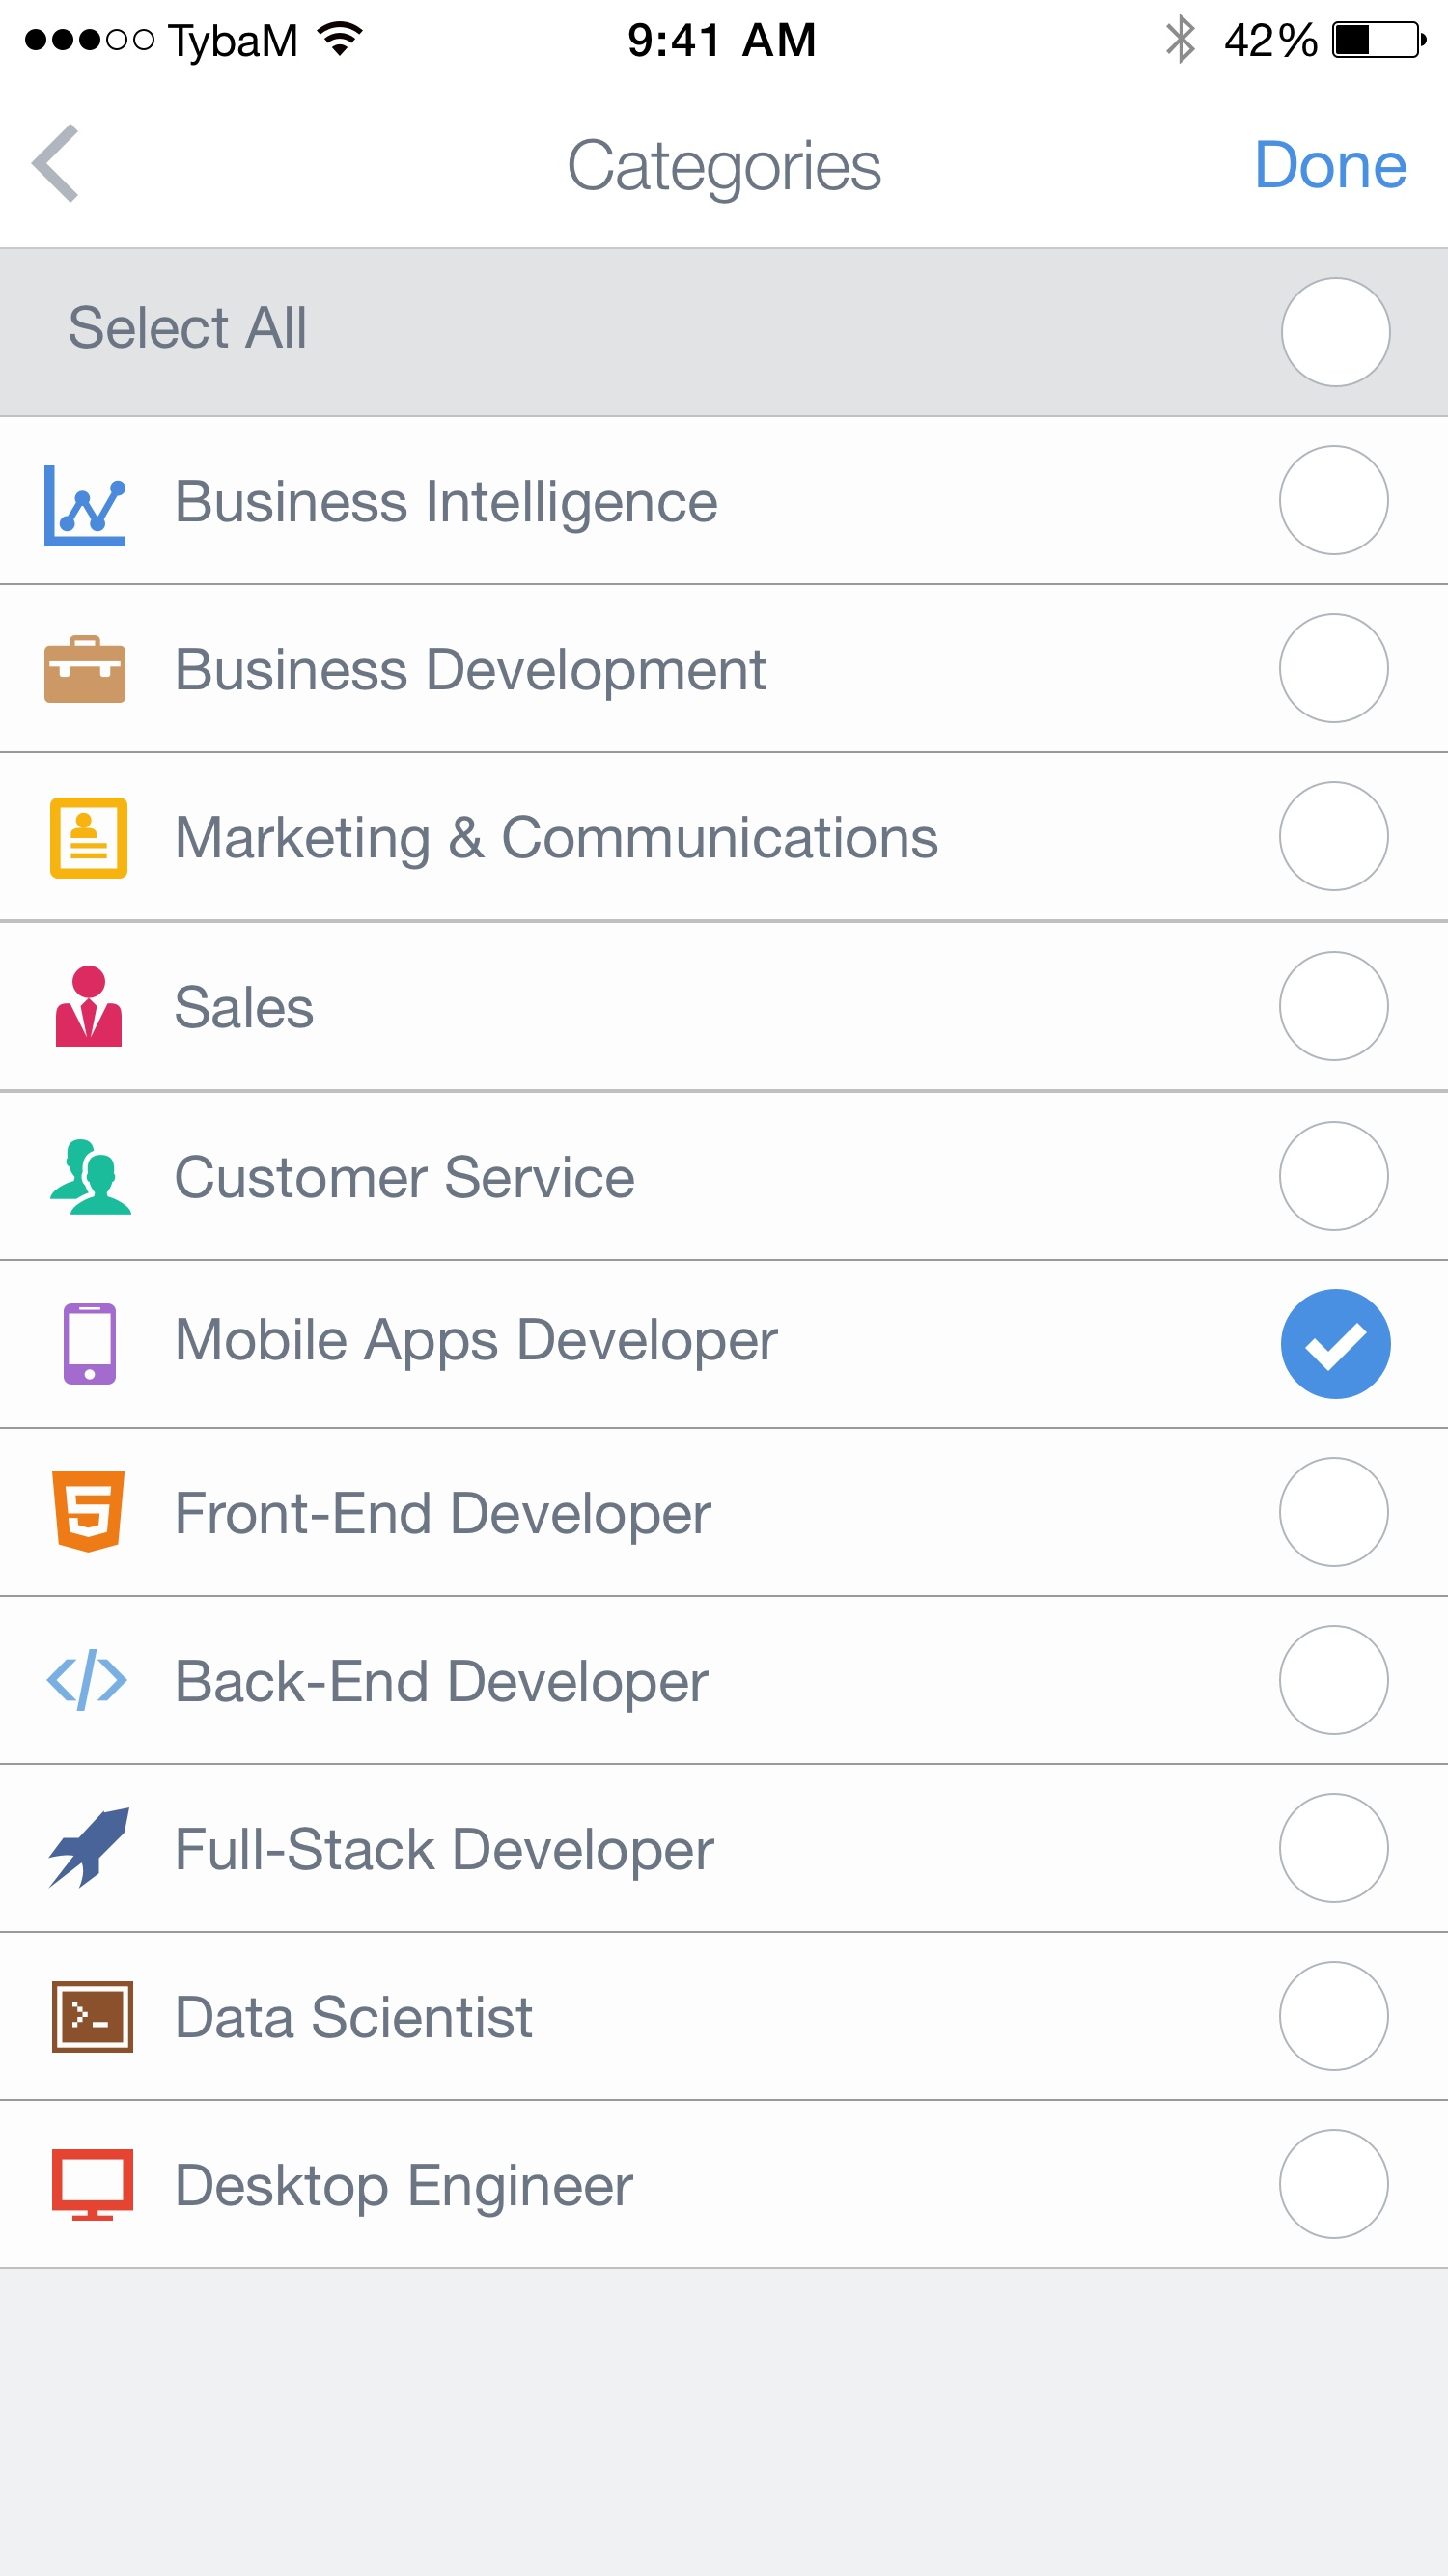 Jobs – Categories Filters